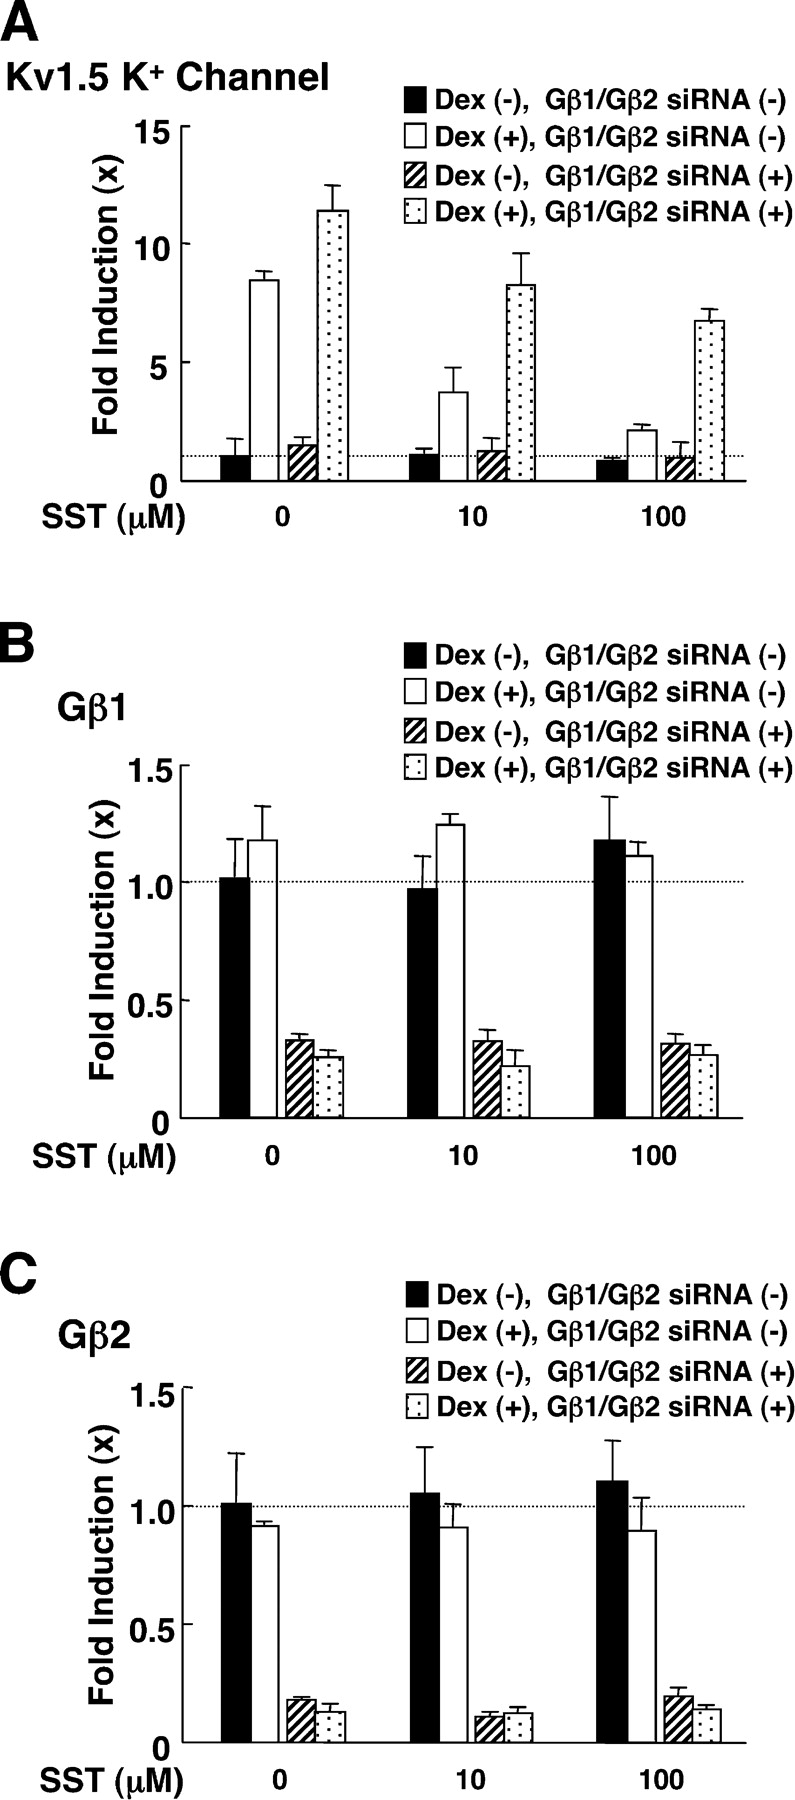 Somatostatin suppressed dexamethasone-stimulated transcriptional activity of the Kv1.5 potassium channel gene, whereas abrogation of Gβ1 and Gβ2 attenuated the somatostatin effect in GH3 cells. GH3 cells were transfected with control or Gβ1 and Gβ2 siRNAs, and were treated with 10 −6 M of dexamethasone and/or the indicated amounts of somatostatin for 24 h. Total RNA was then purified from the cells and the amounts of Kv1.5 potassium channel (A), Gβ1 (B), Gβ2 (C), or RPLP0 mRNAs were determined by RT-PCR. Bars show mean ± SEM of their fold induction over baseline.